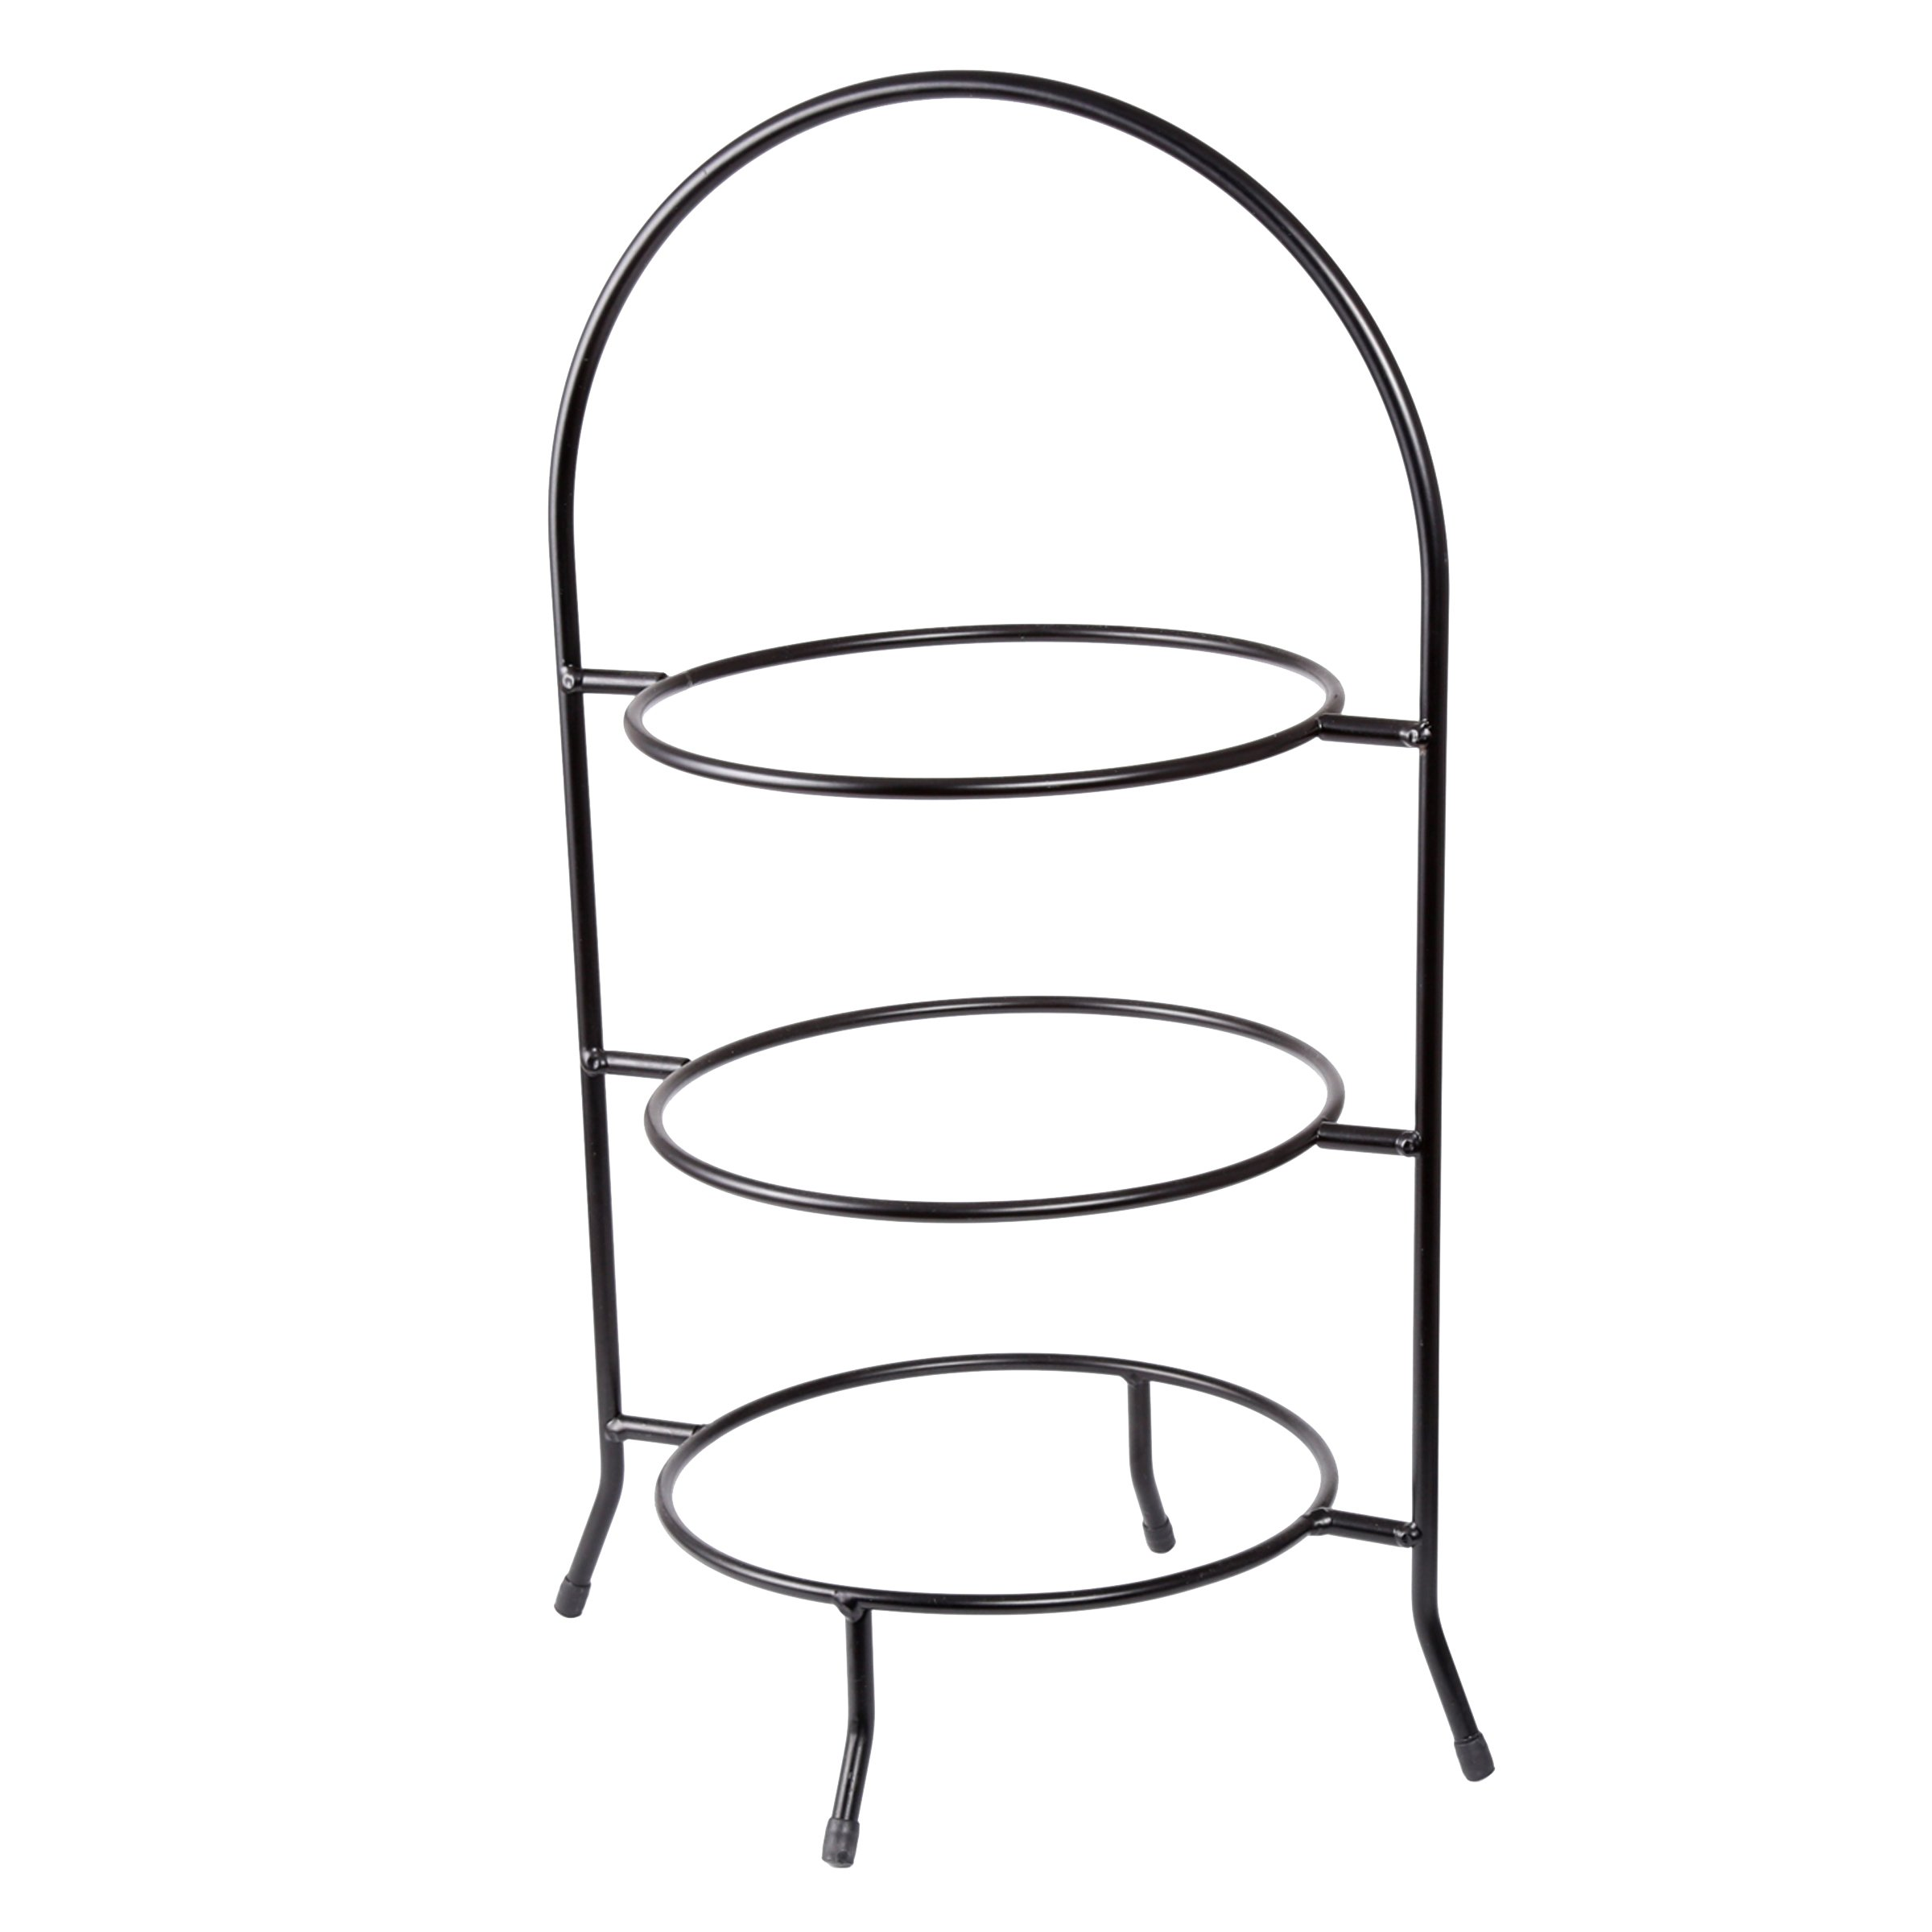 Creative Home 73045 3-Tier Dinner Plate Rack, 20-Inch H